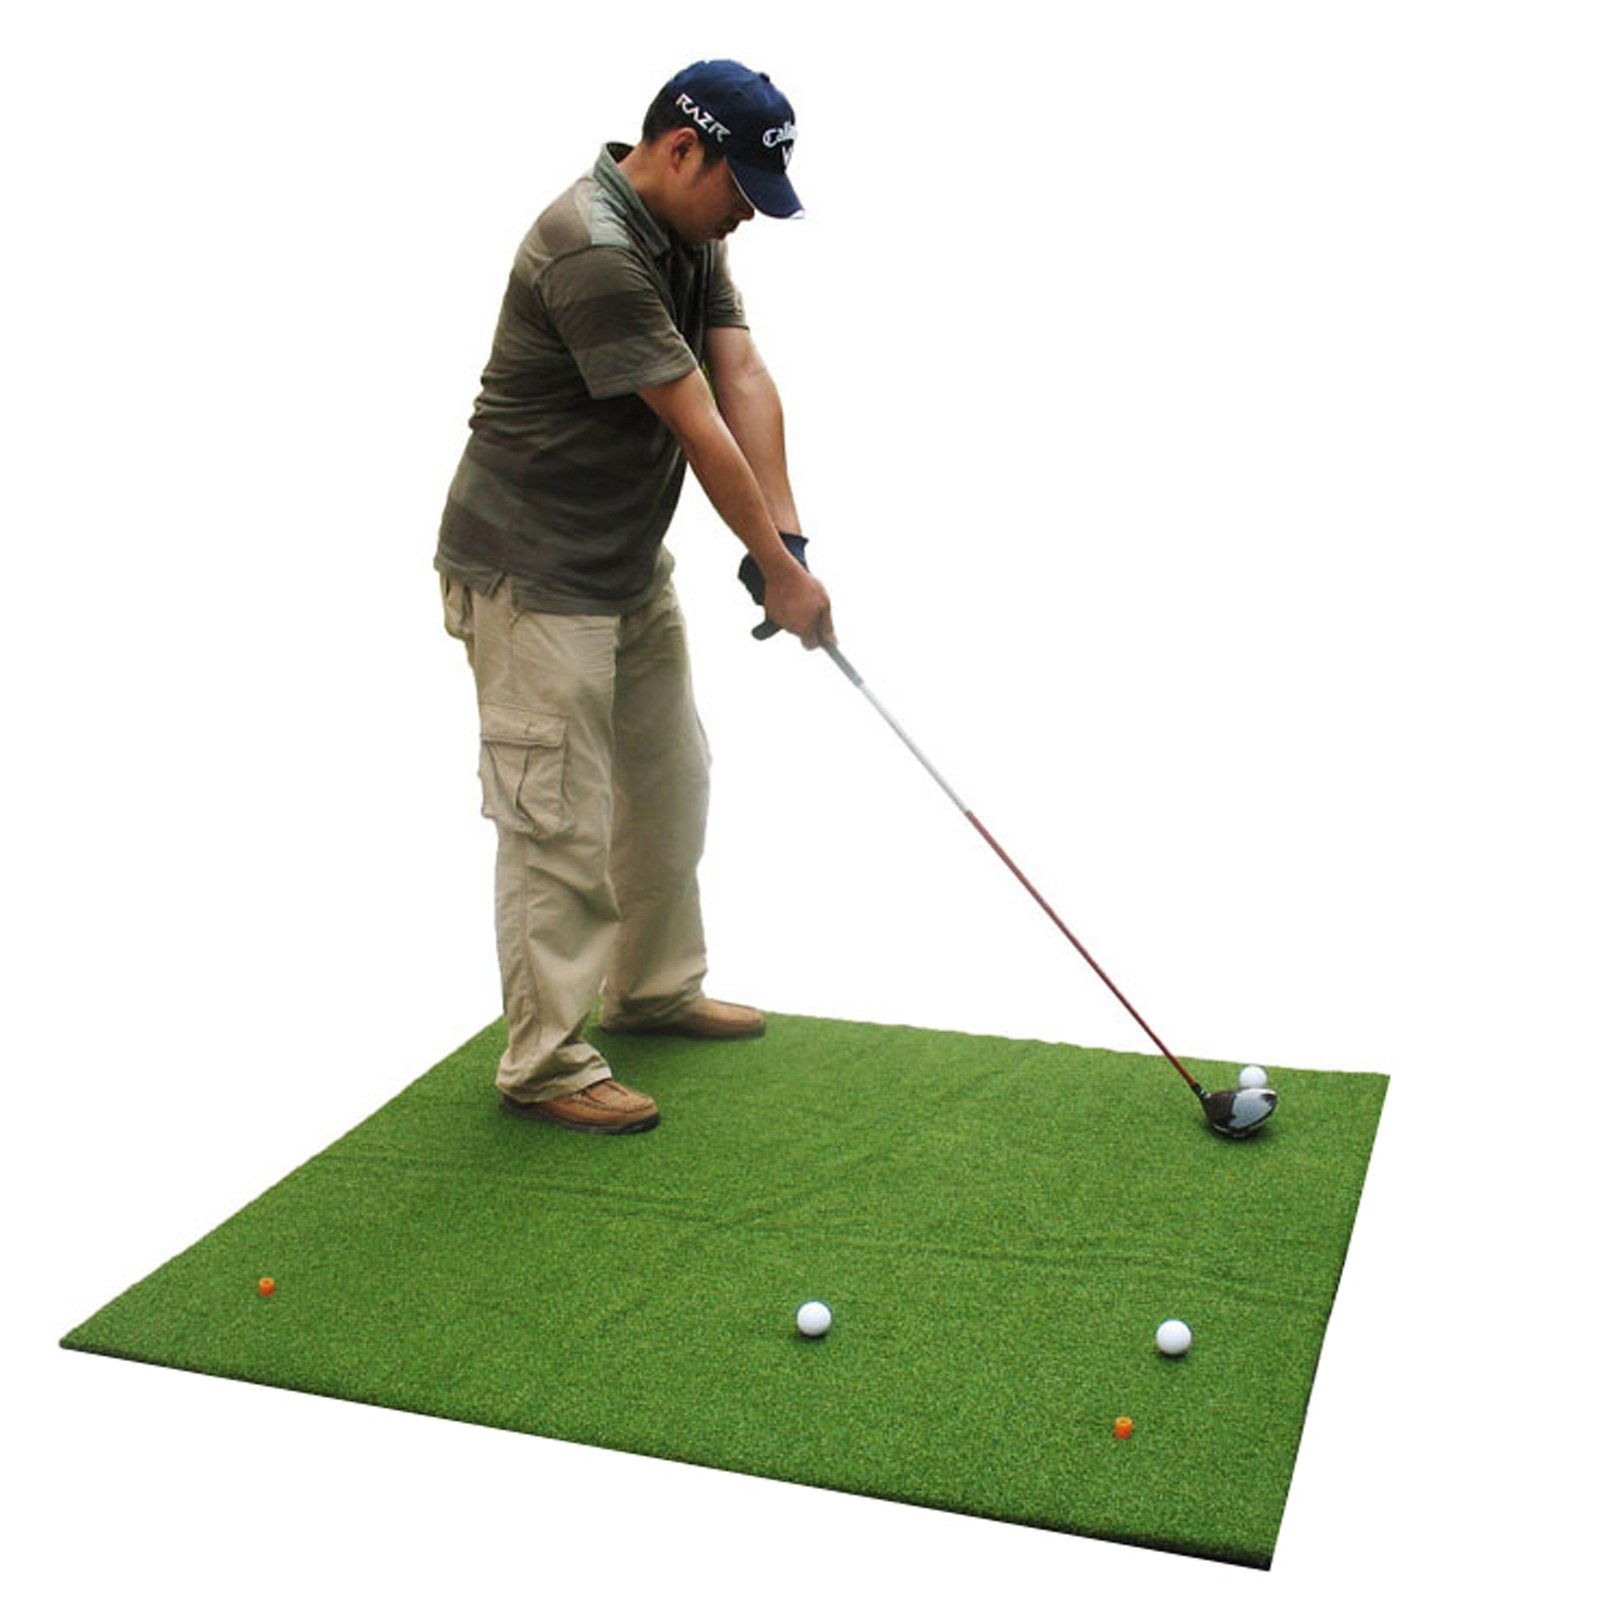 Popsport 3' x 4'/3' x 5'/4' x 4'/4' x 5'/5' x 5' Golf Mats Practice Golf Hitting Mat Portable Outdoor Sports Golf Training Turf Mat for Indoor Backyard or Outdoor Practice (4' x 4') by Popsport